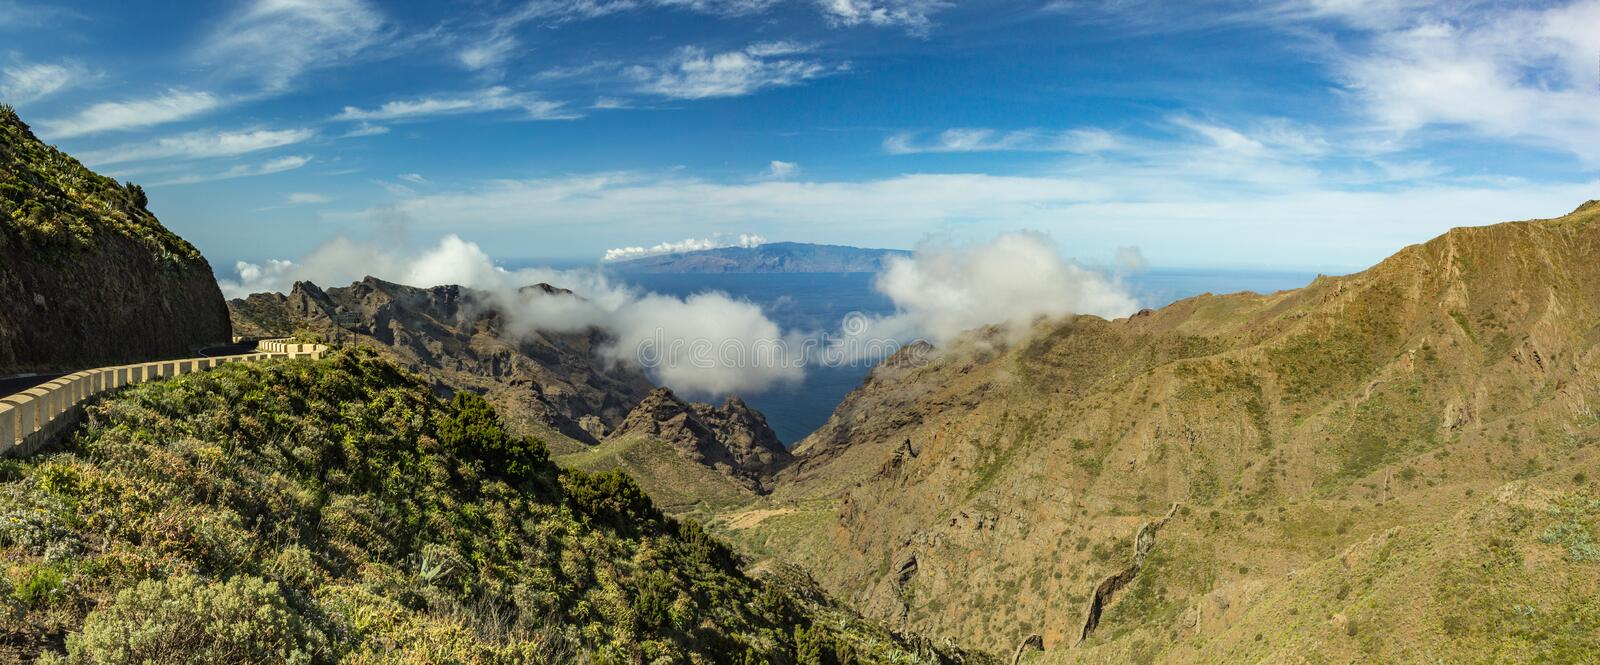 Serpentine road and amazing view of Blue sky with beautiful fluffy clouds, Island of La Gomera, mountain landscape. Sunny day on royalty free stock photos